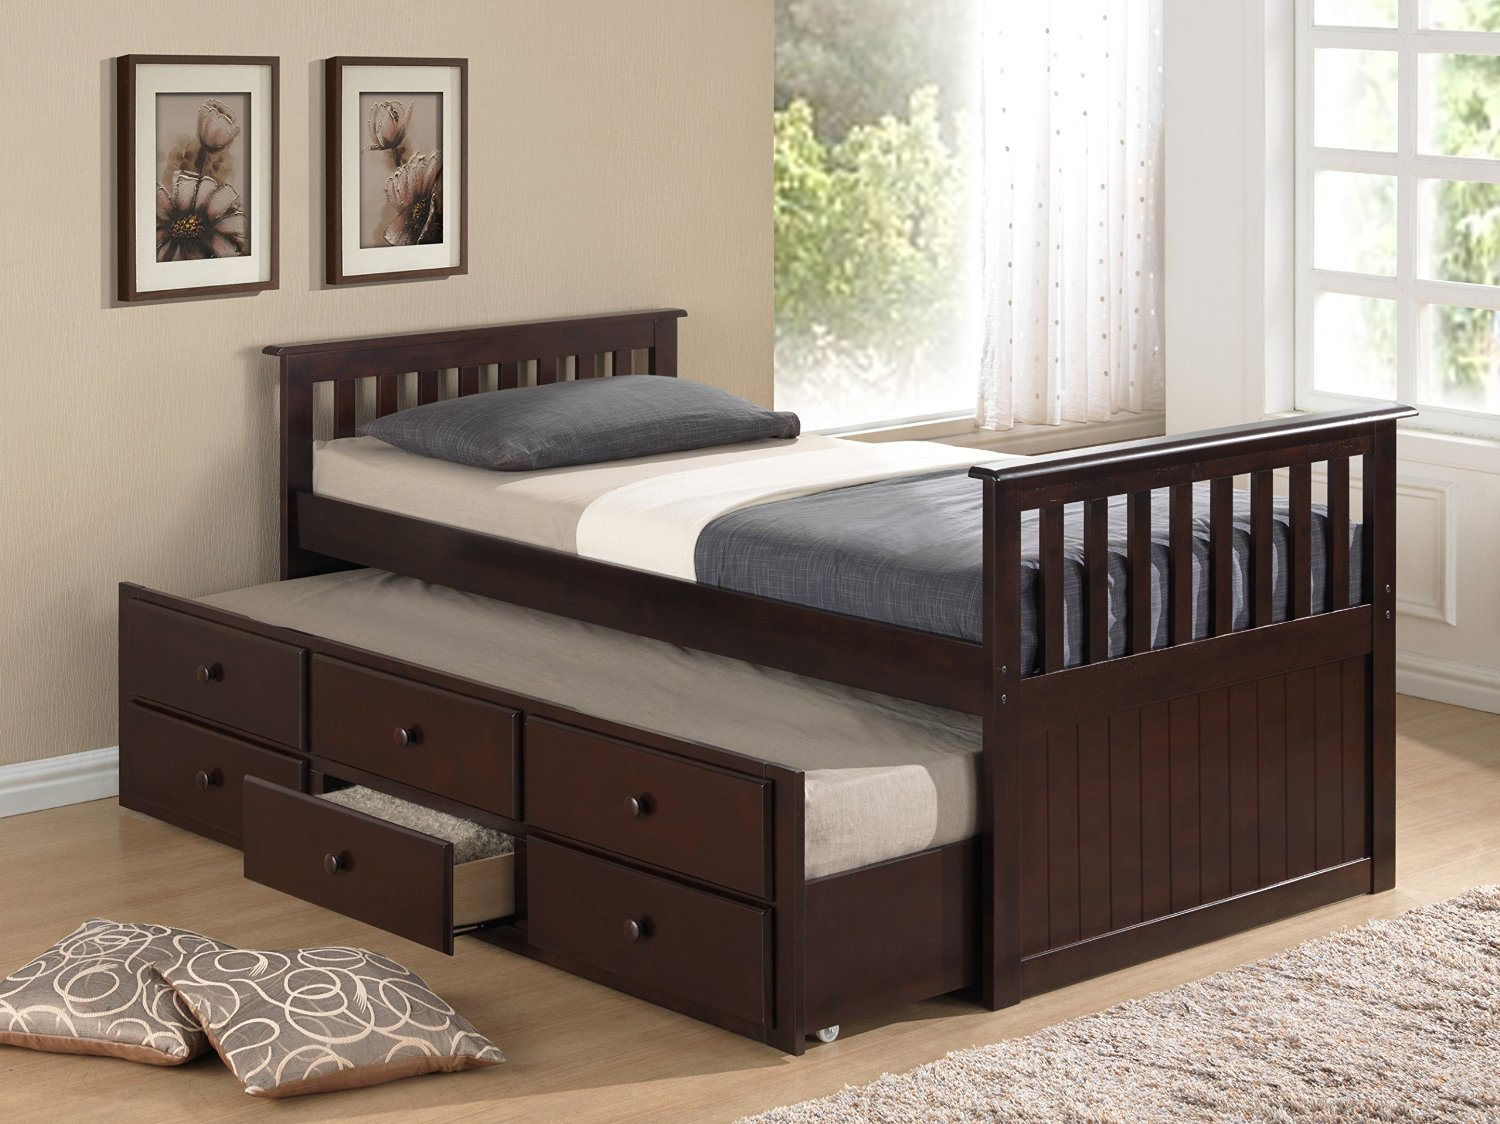 Pull Out Bed Under Bed Twin Bed With Pull Out Slide Out Trundle Bed Underneath